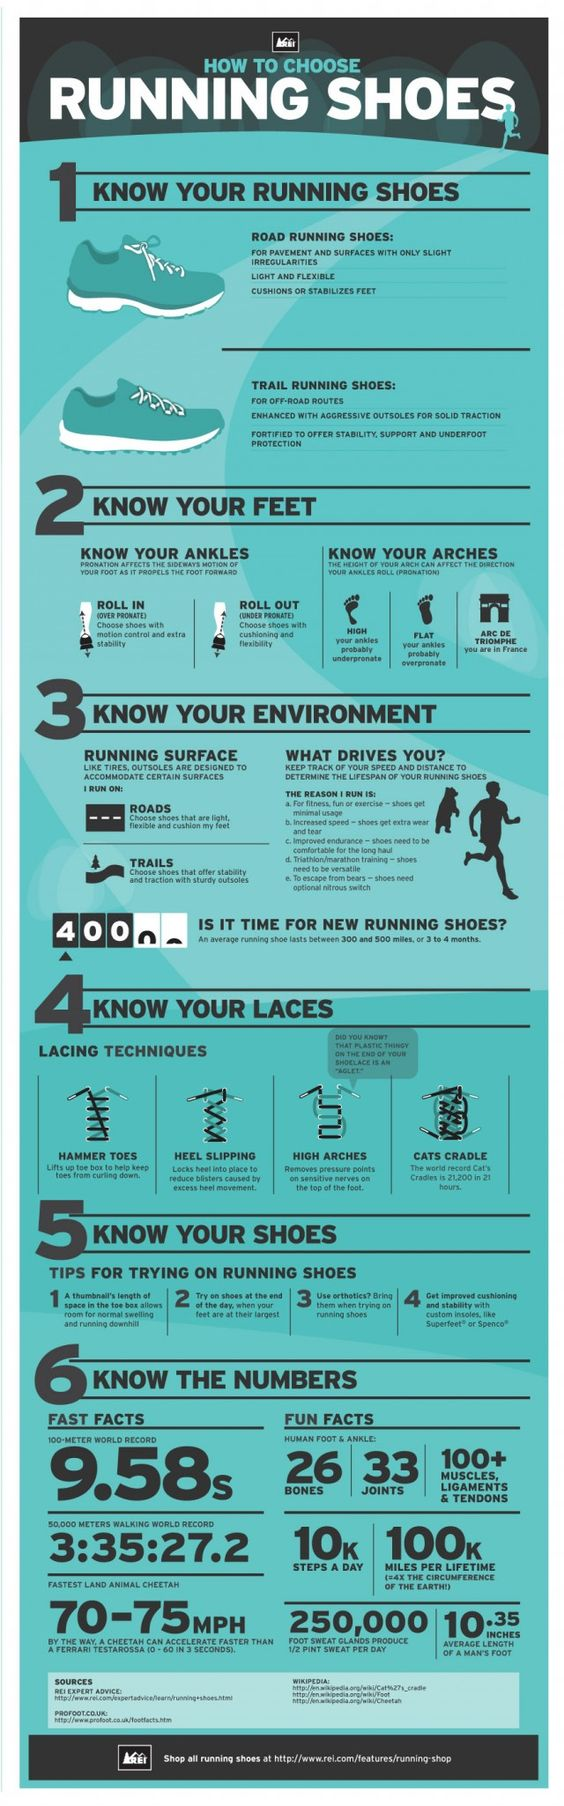 Choose, Lace, and Replace Your Running Shoes Based on How You Run